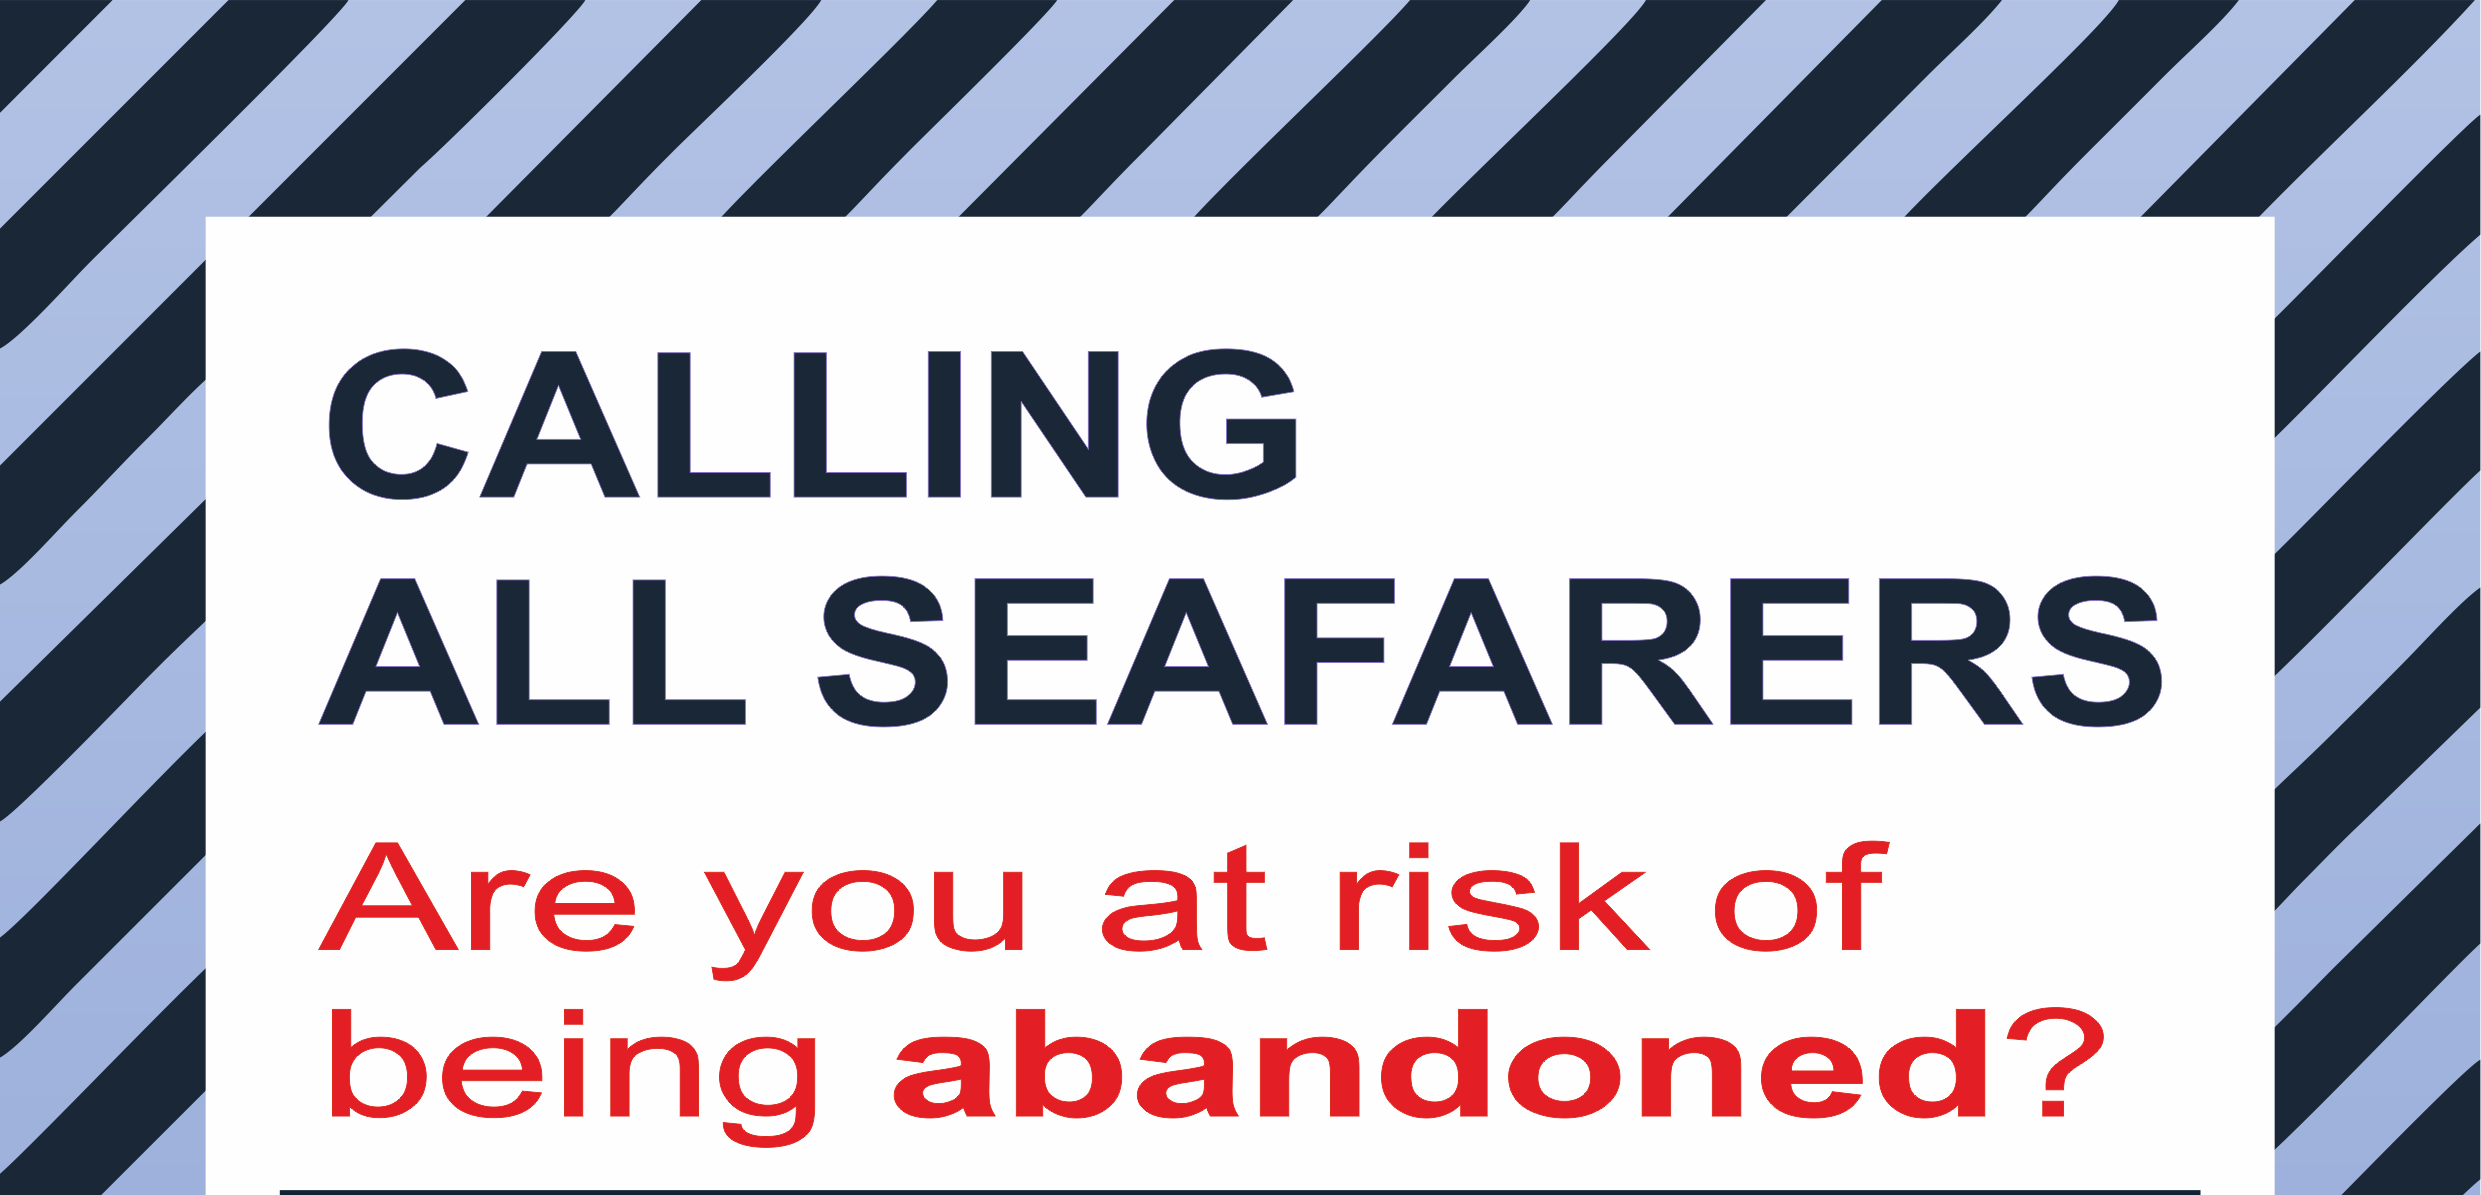 Poster: Are you at risk of being abandoned?